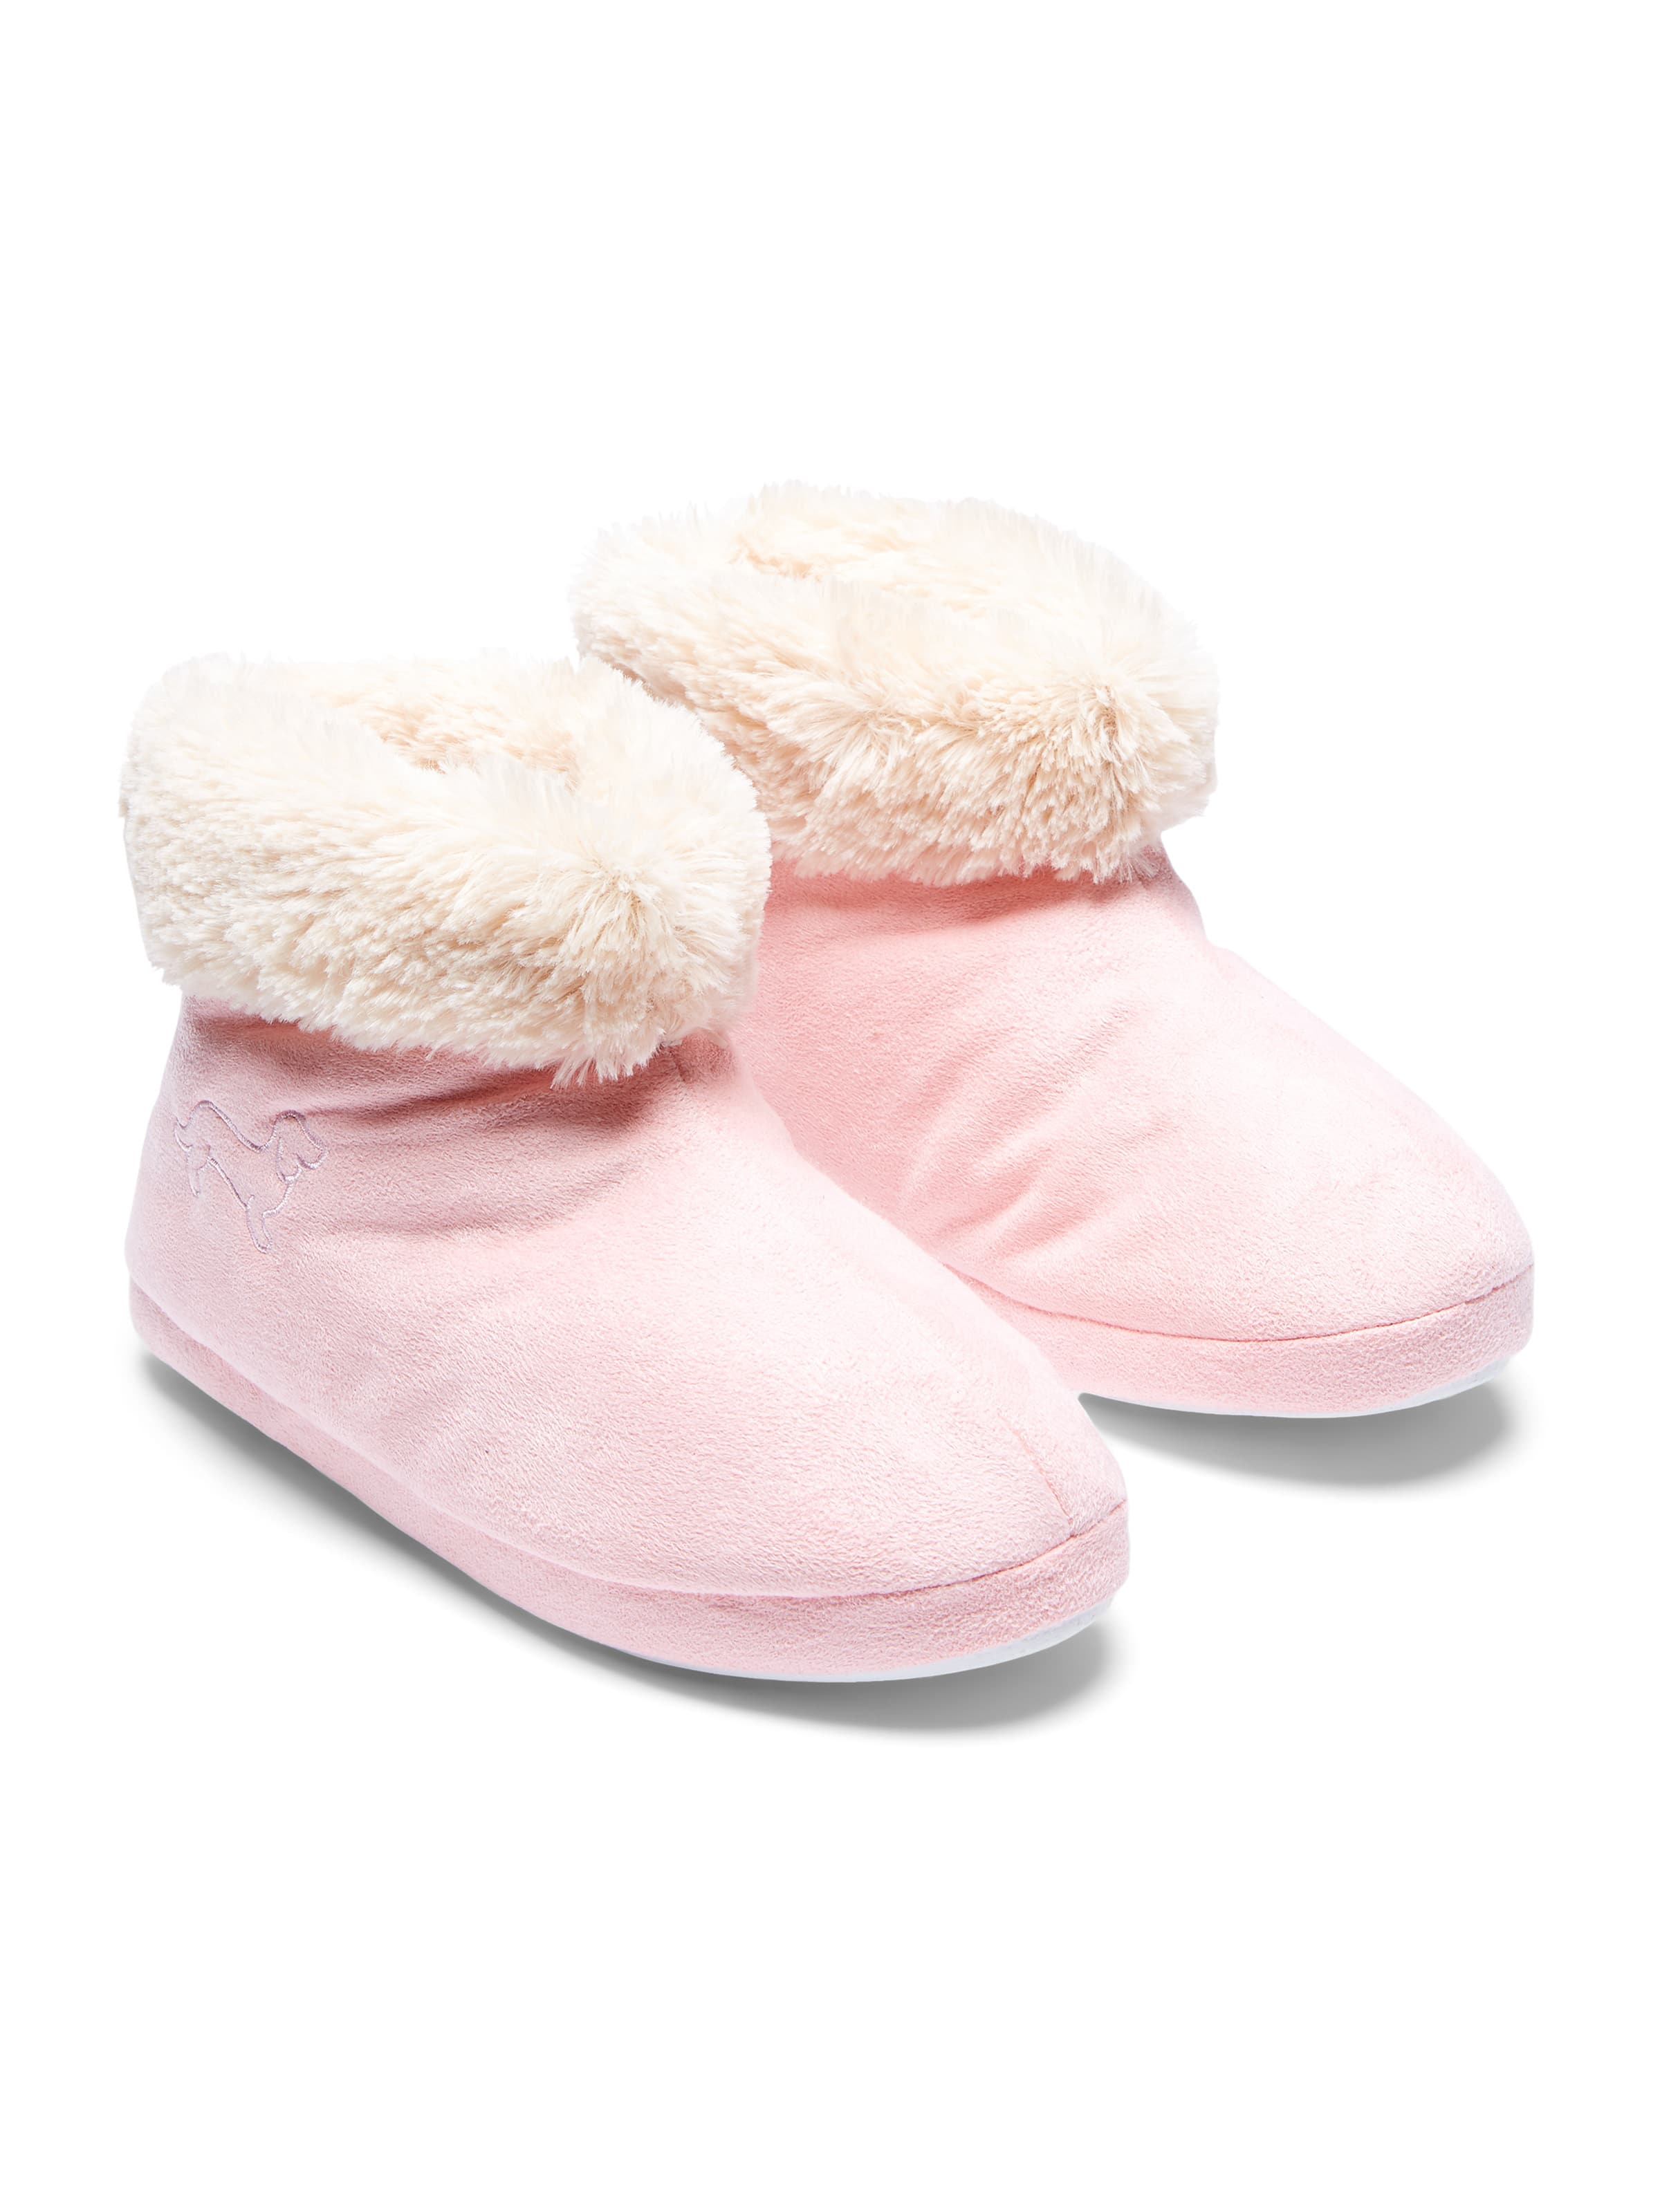 P.A. Snuggle Boots